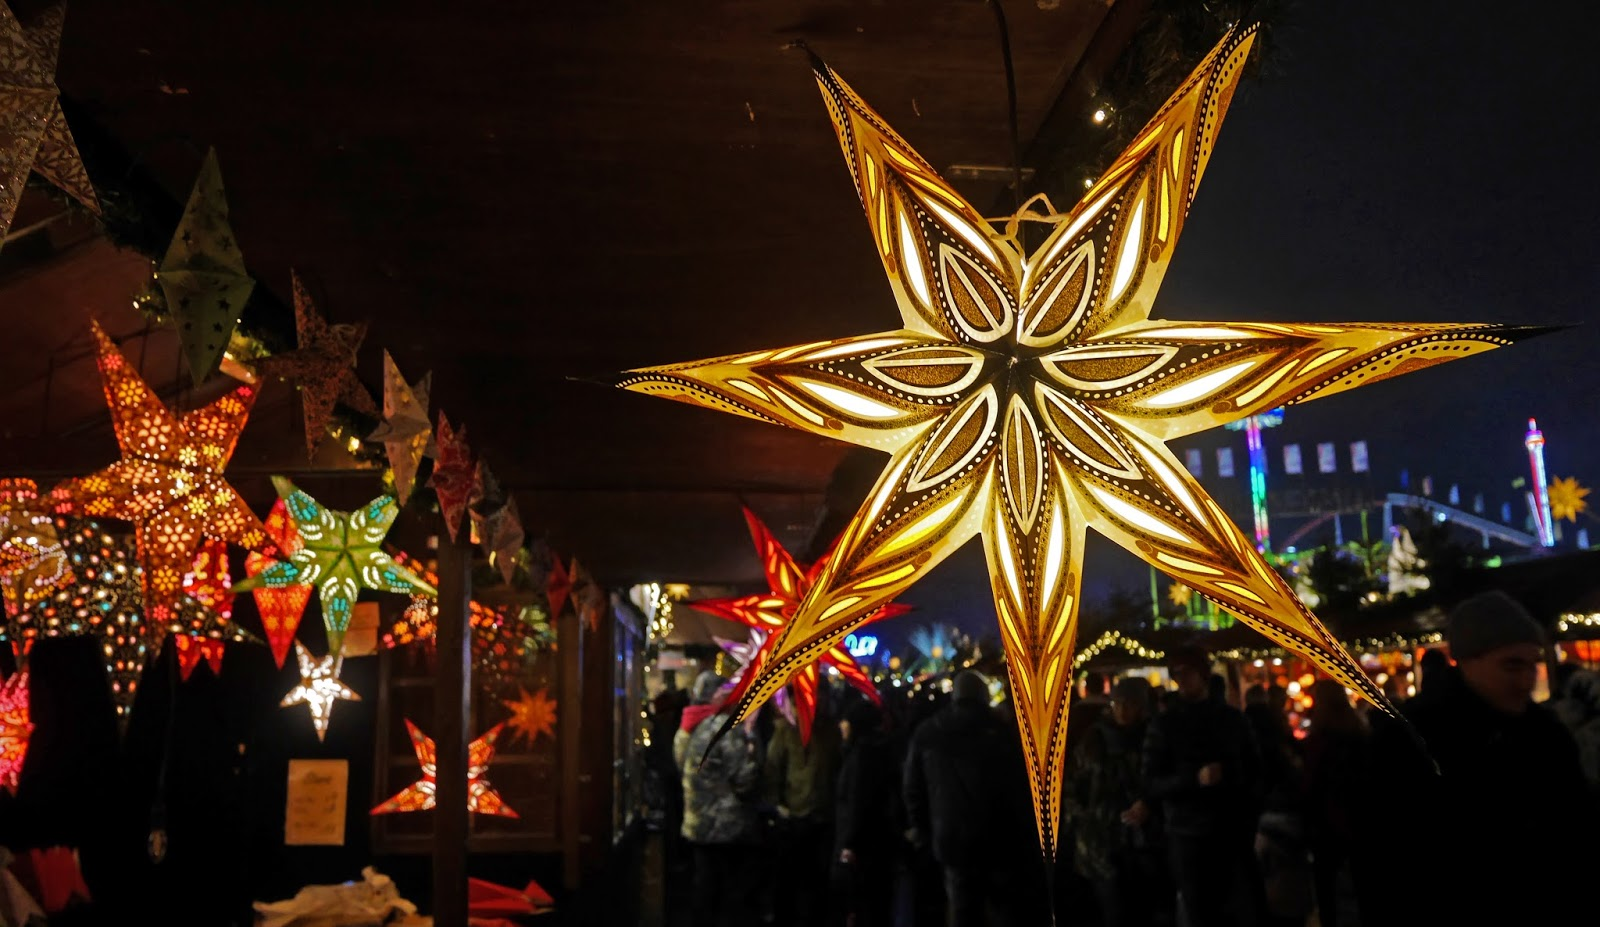 Star lanterns at Winter Wonderland